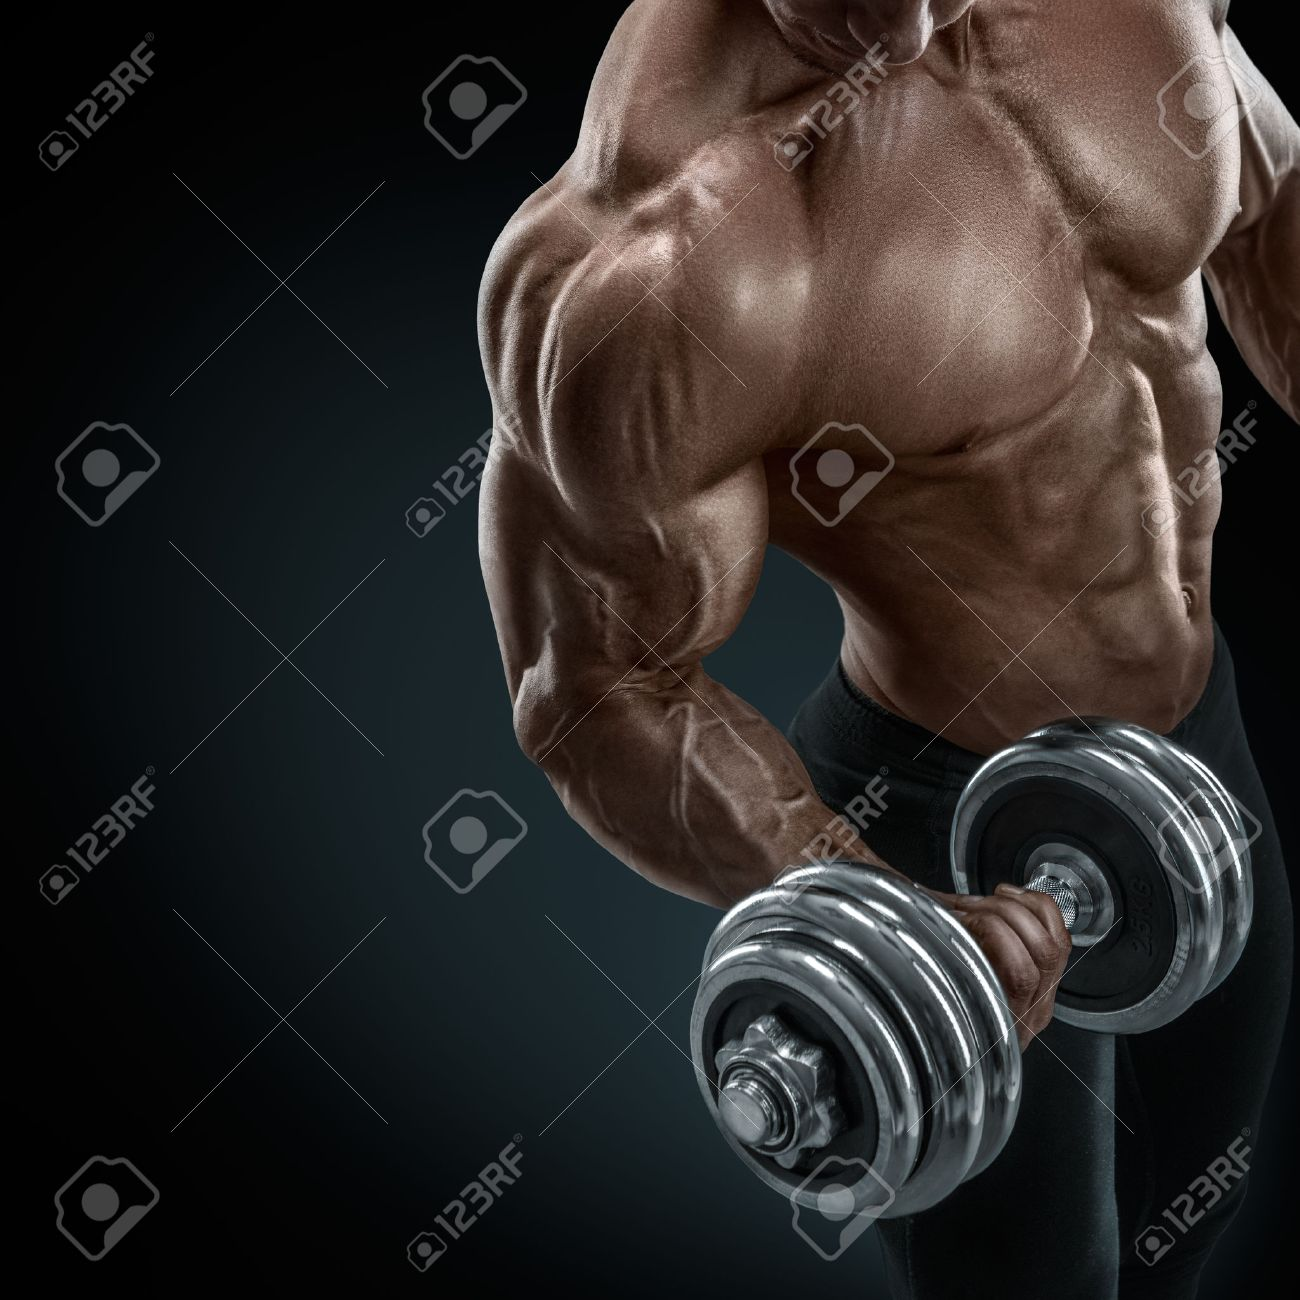 Closeup of a handsome power athletic guy male bodybuilder doing exercises with dumbbell. Fitness muscular body on dark background. Standard-Bild - 41379856